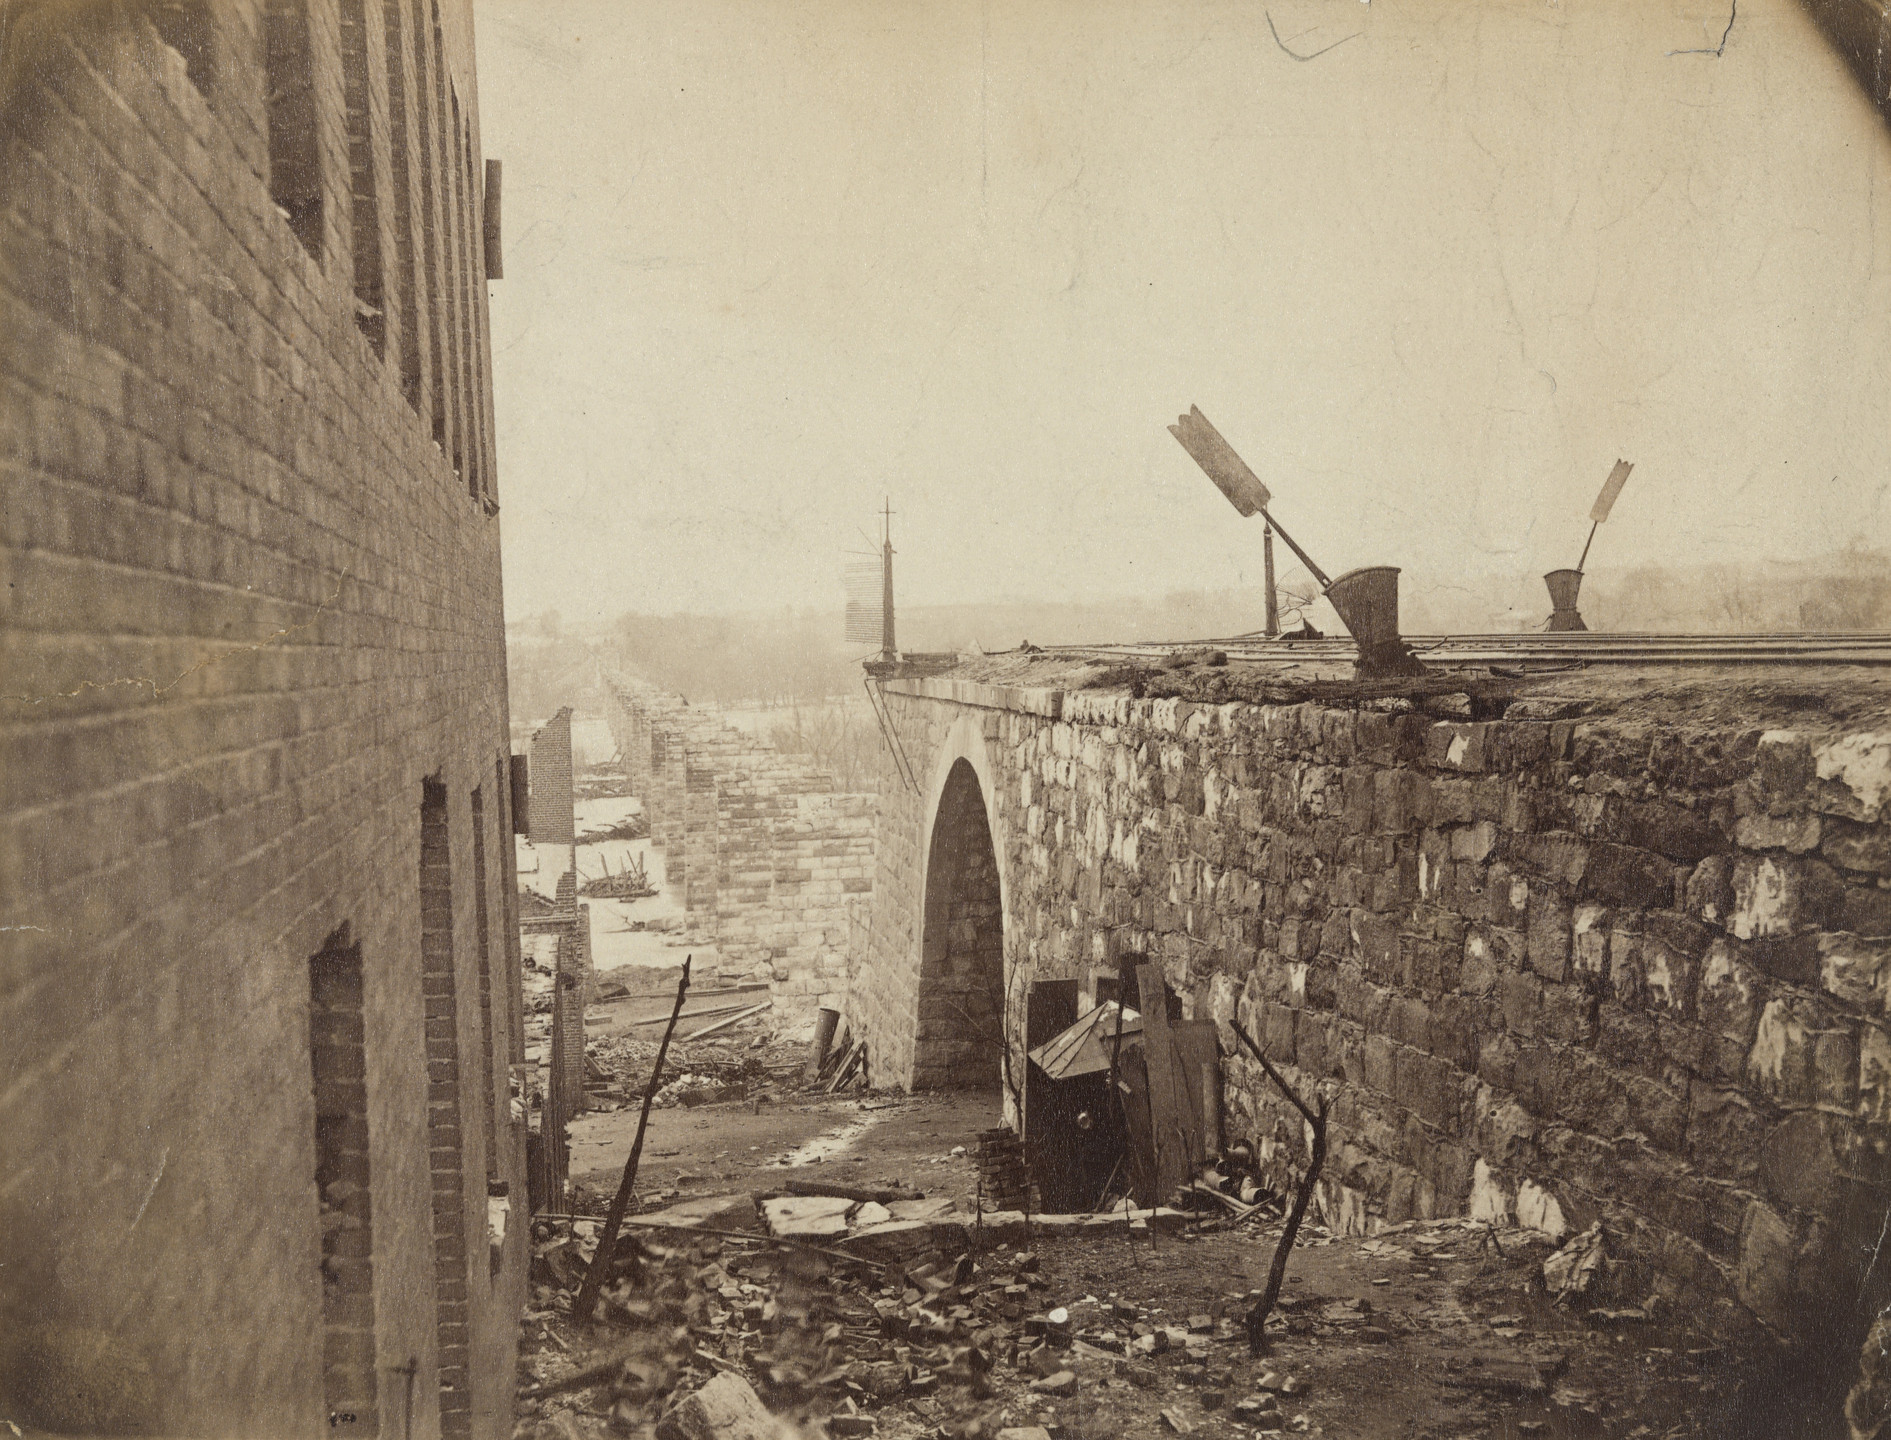 Mathew B. Brady (studio of). Ruins of Richmond & Petersburg Railroad Bridge, Richmond, Virginia. April 1865